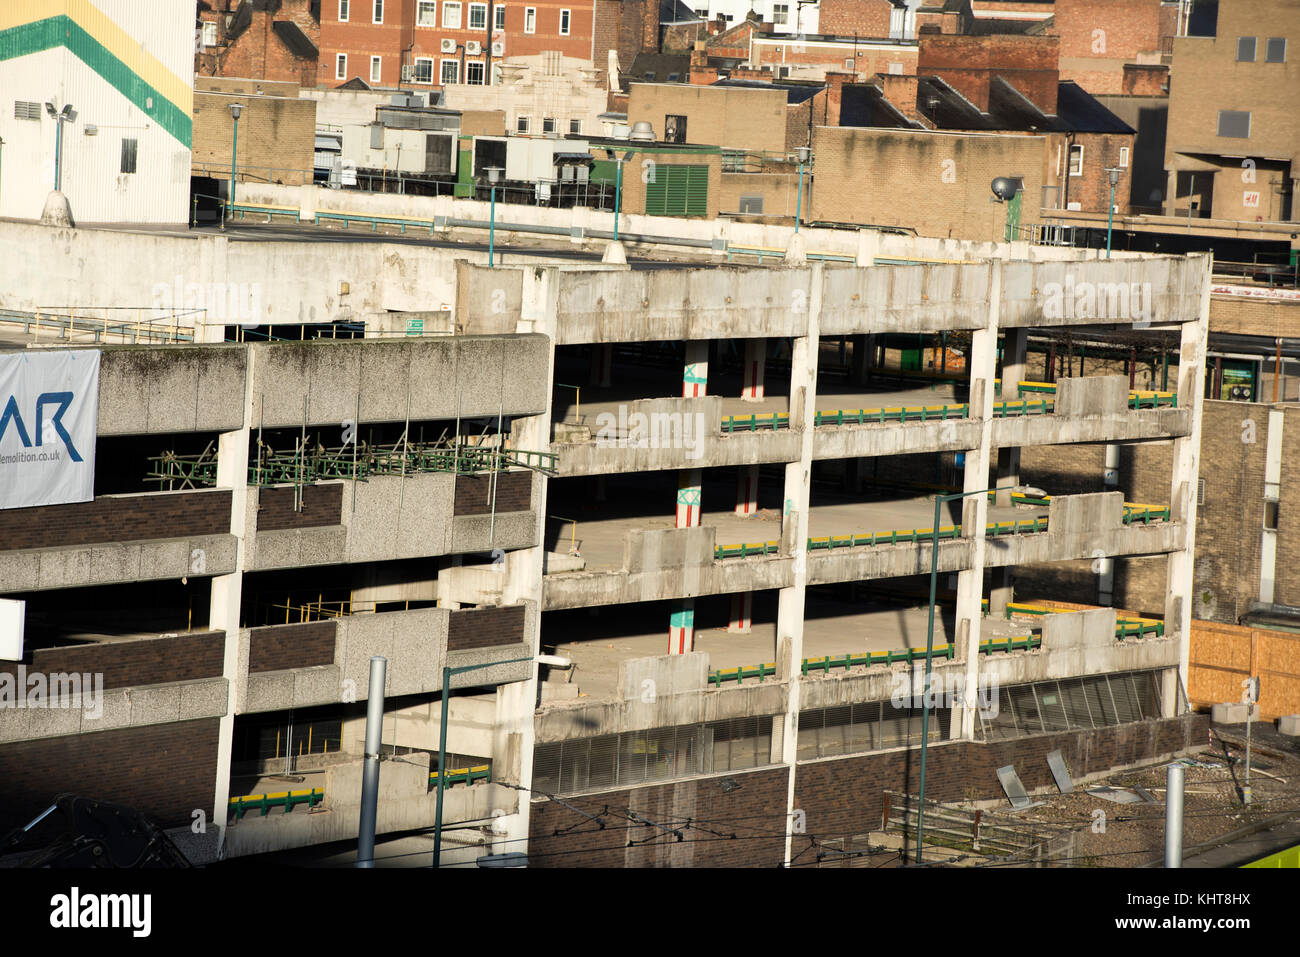 Broadmarsh Car Park Nottingham Demolition